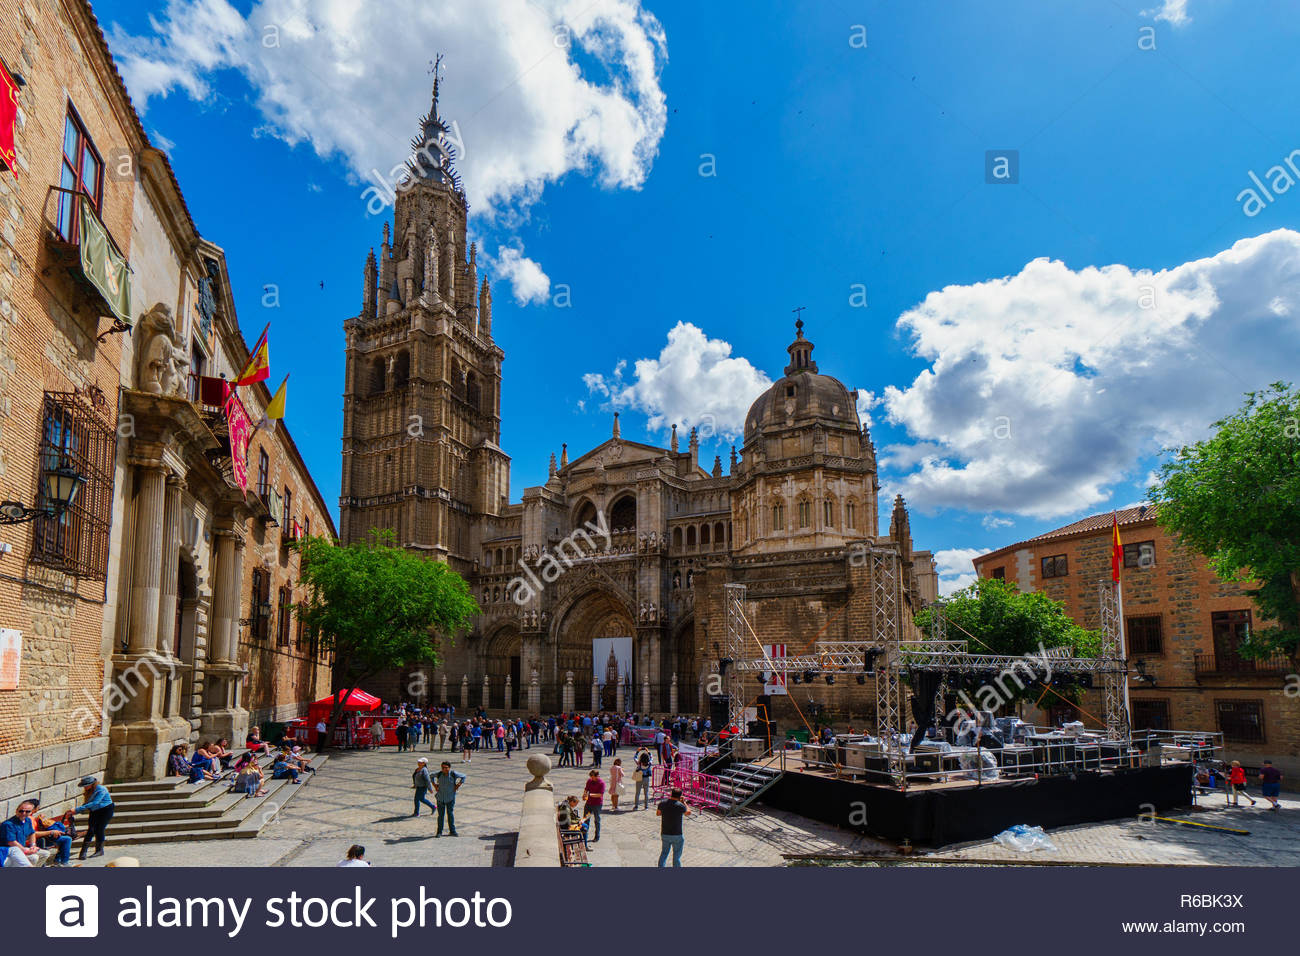 Cathedral of Toledo in Spring with blue sky and clouds - Stock Image